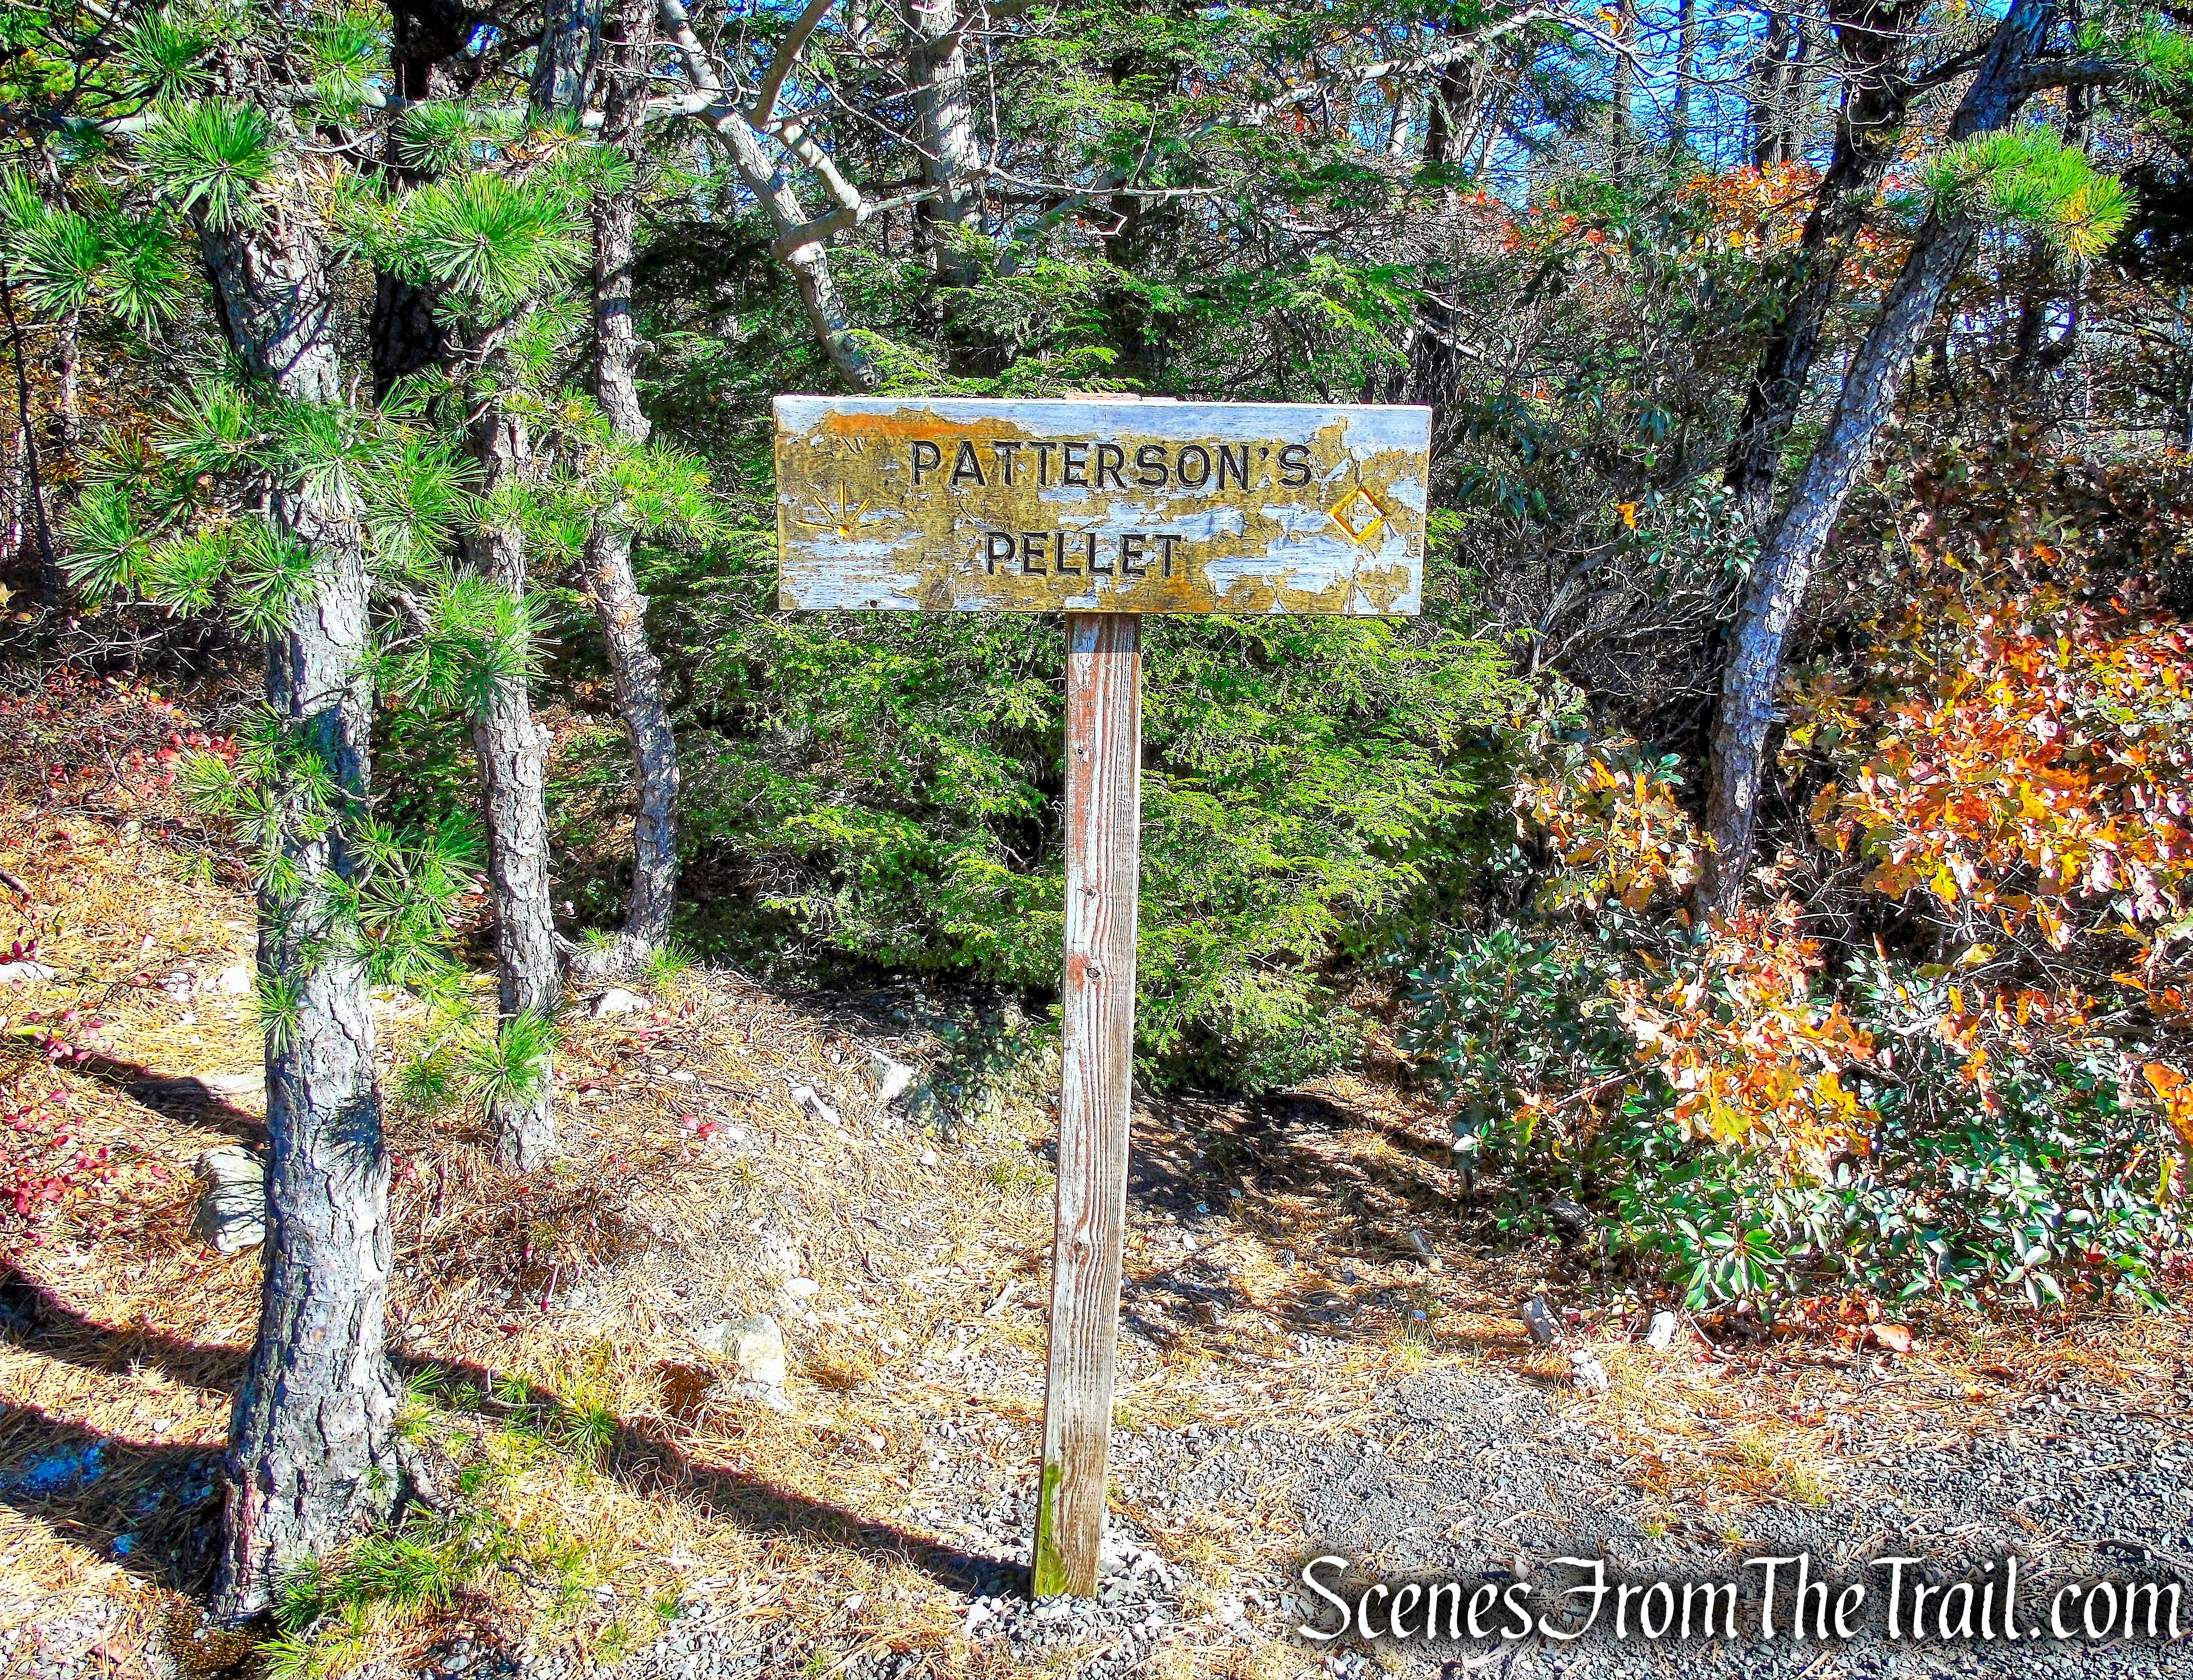 Patterson's Pellet - Millbrook Mountain Carriage Road